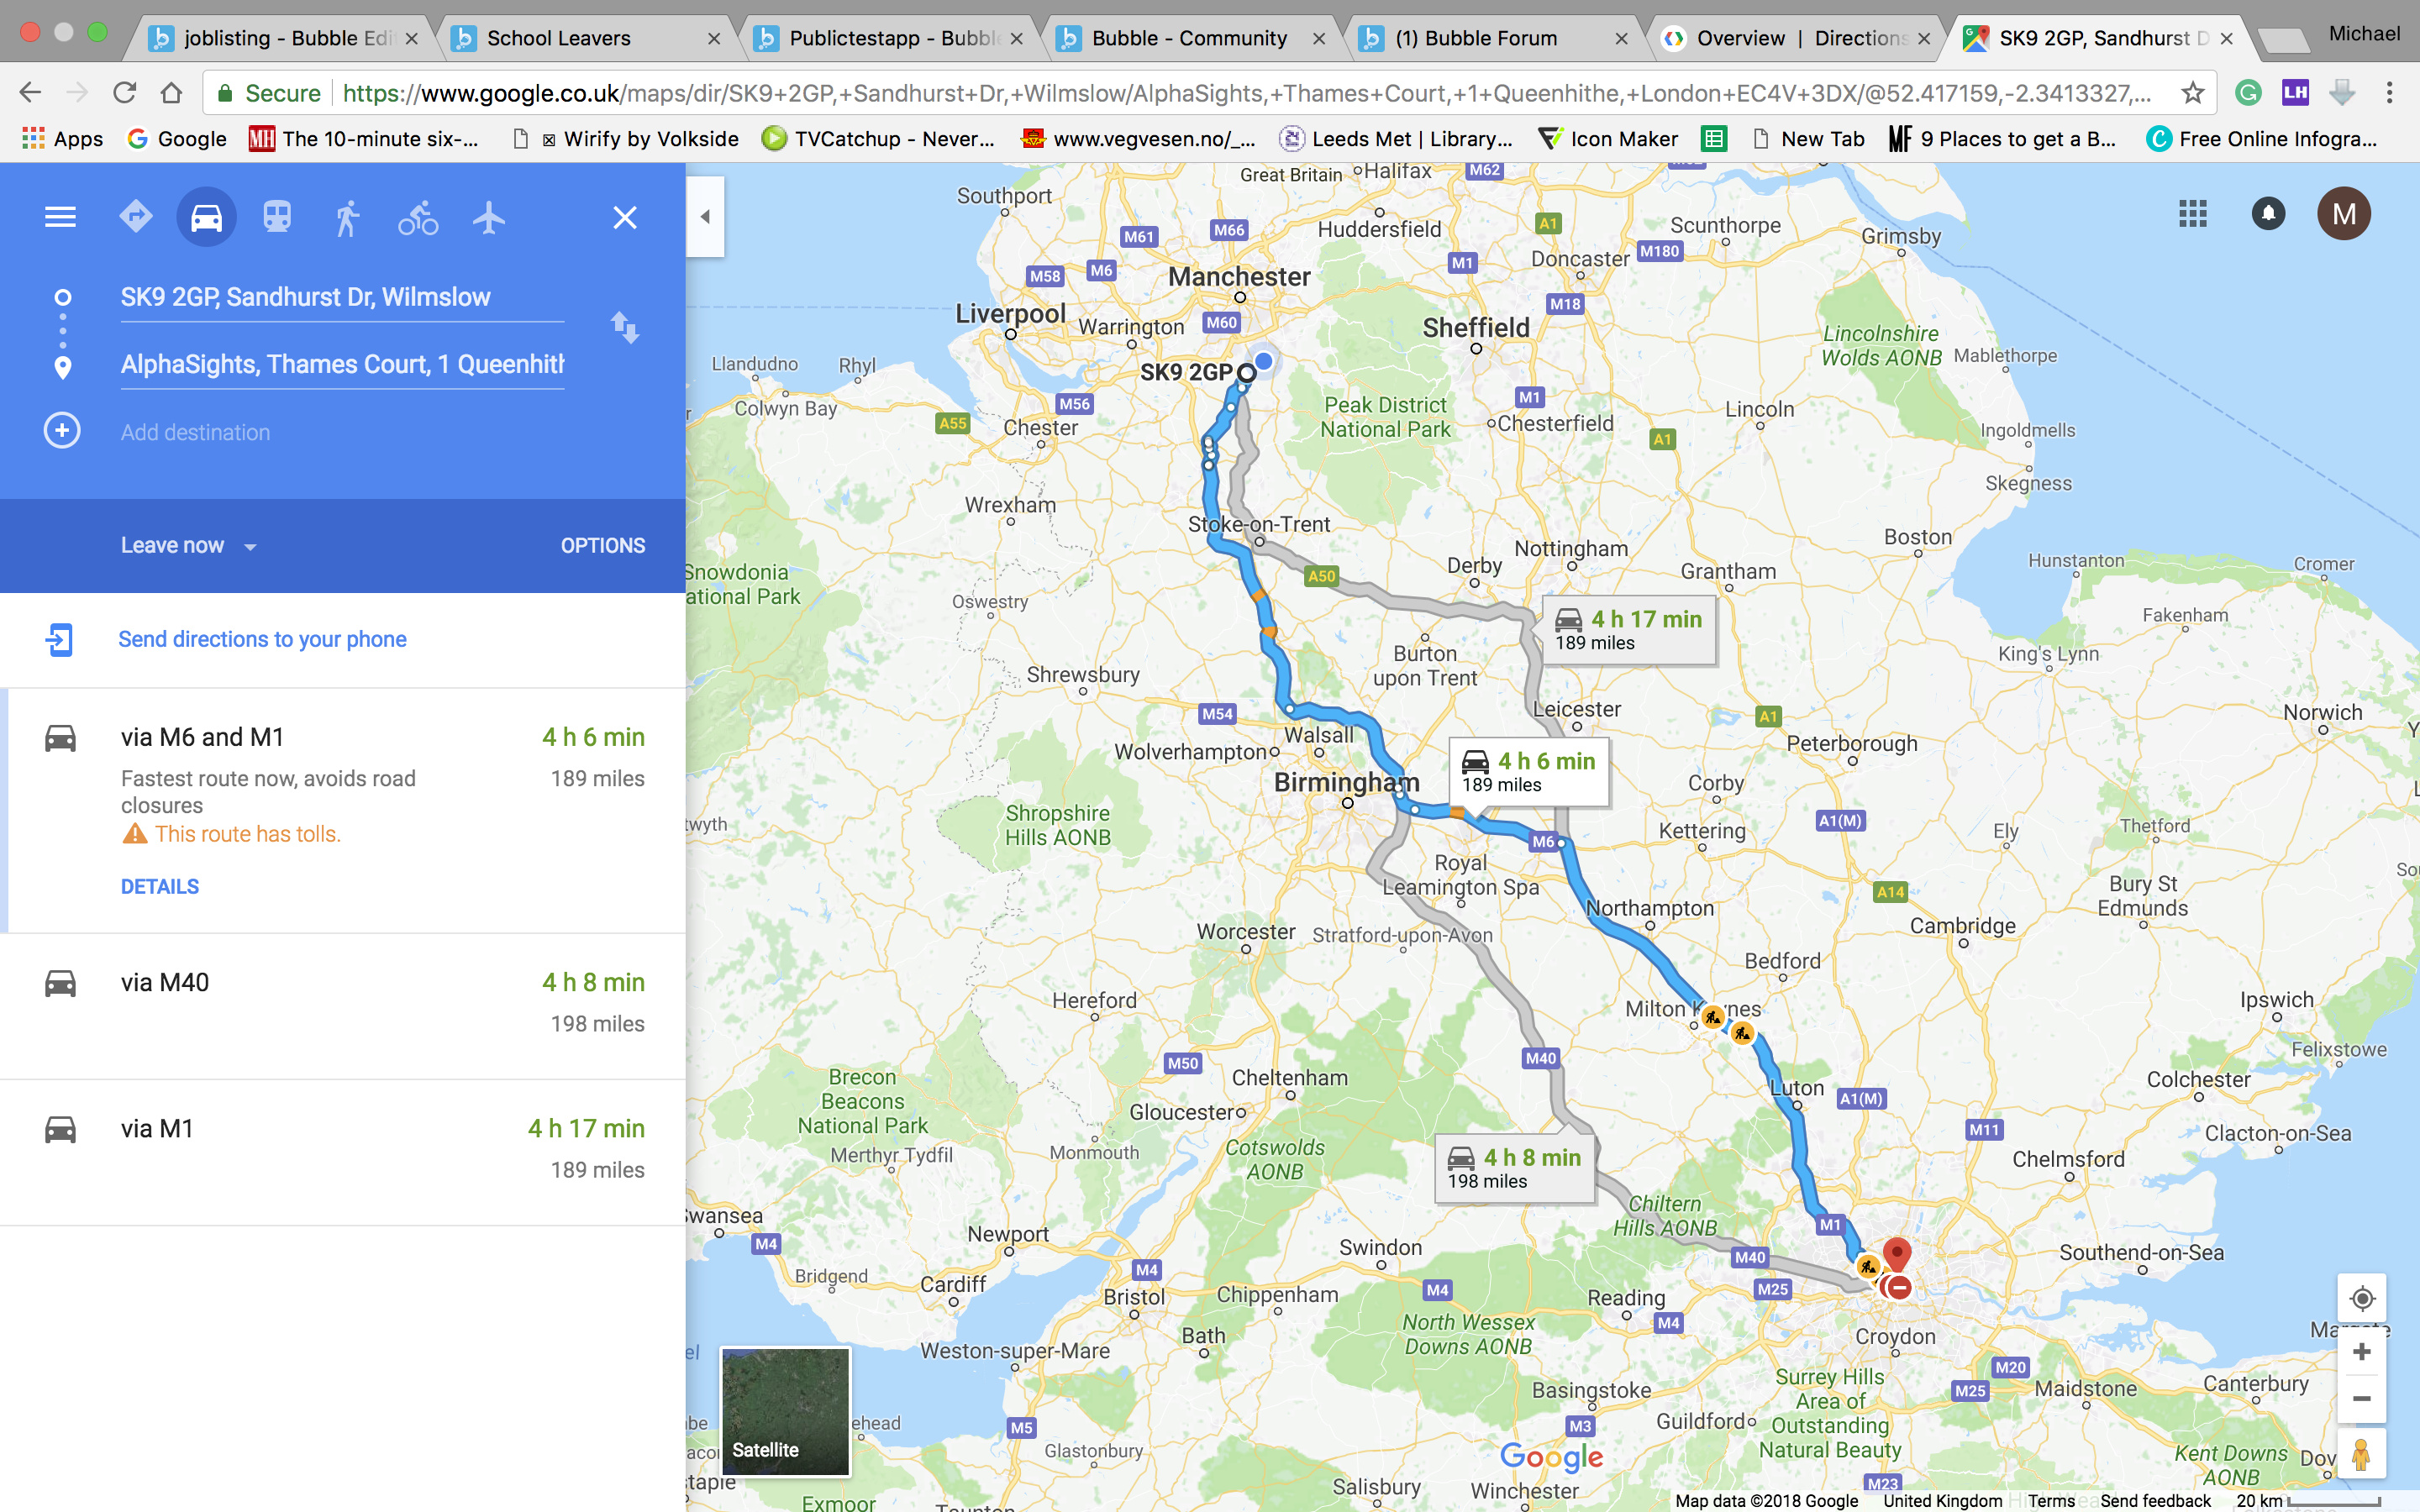 Does It Cost To Use Google Maps on